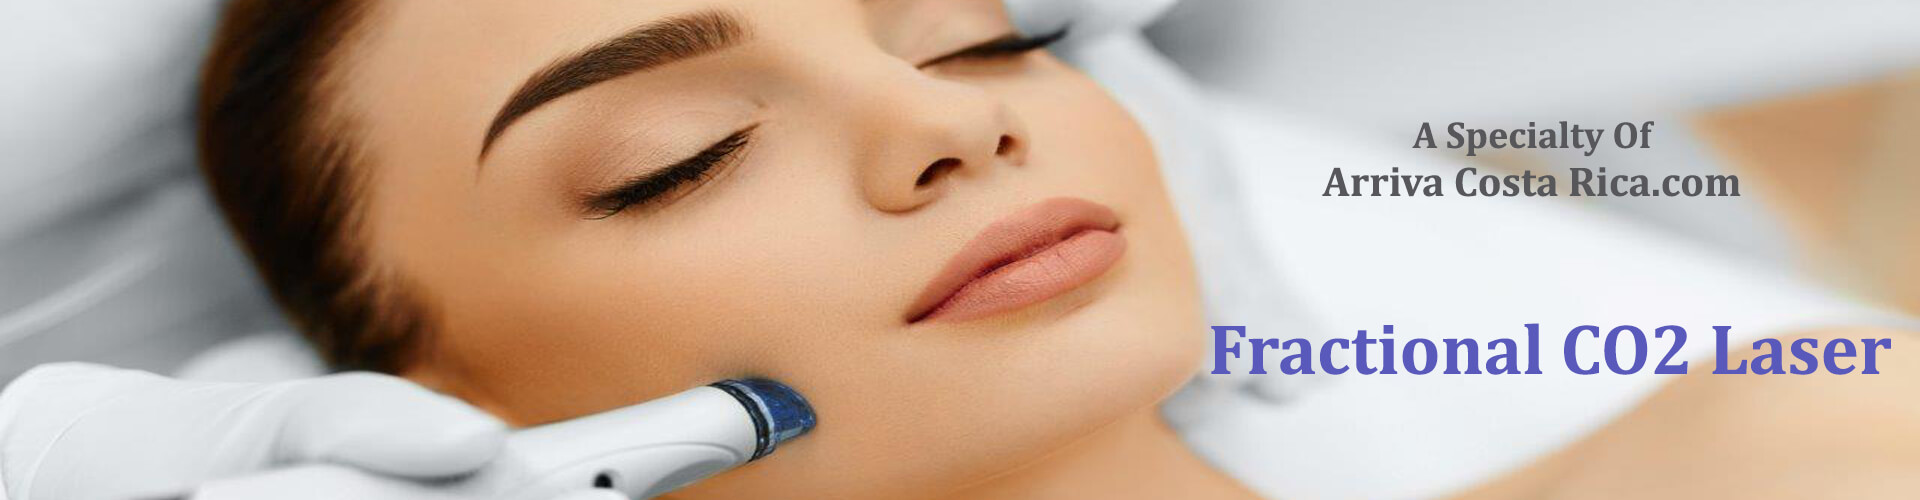 Fractional CO2 Laser Skin Enhancement.